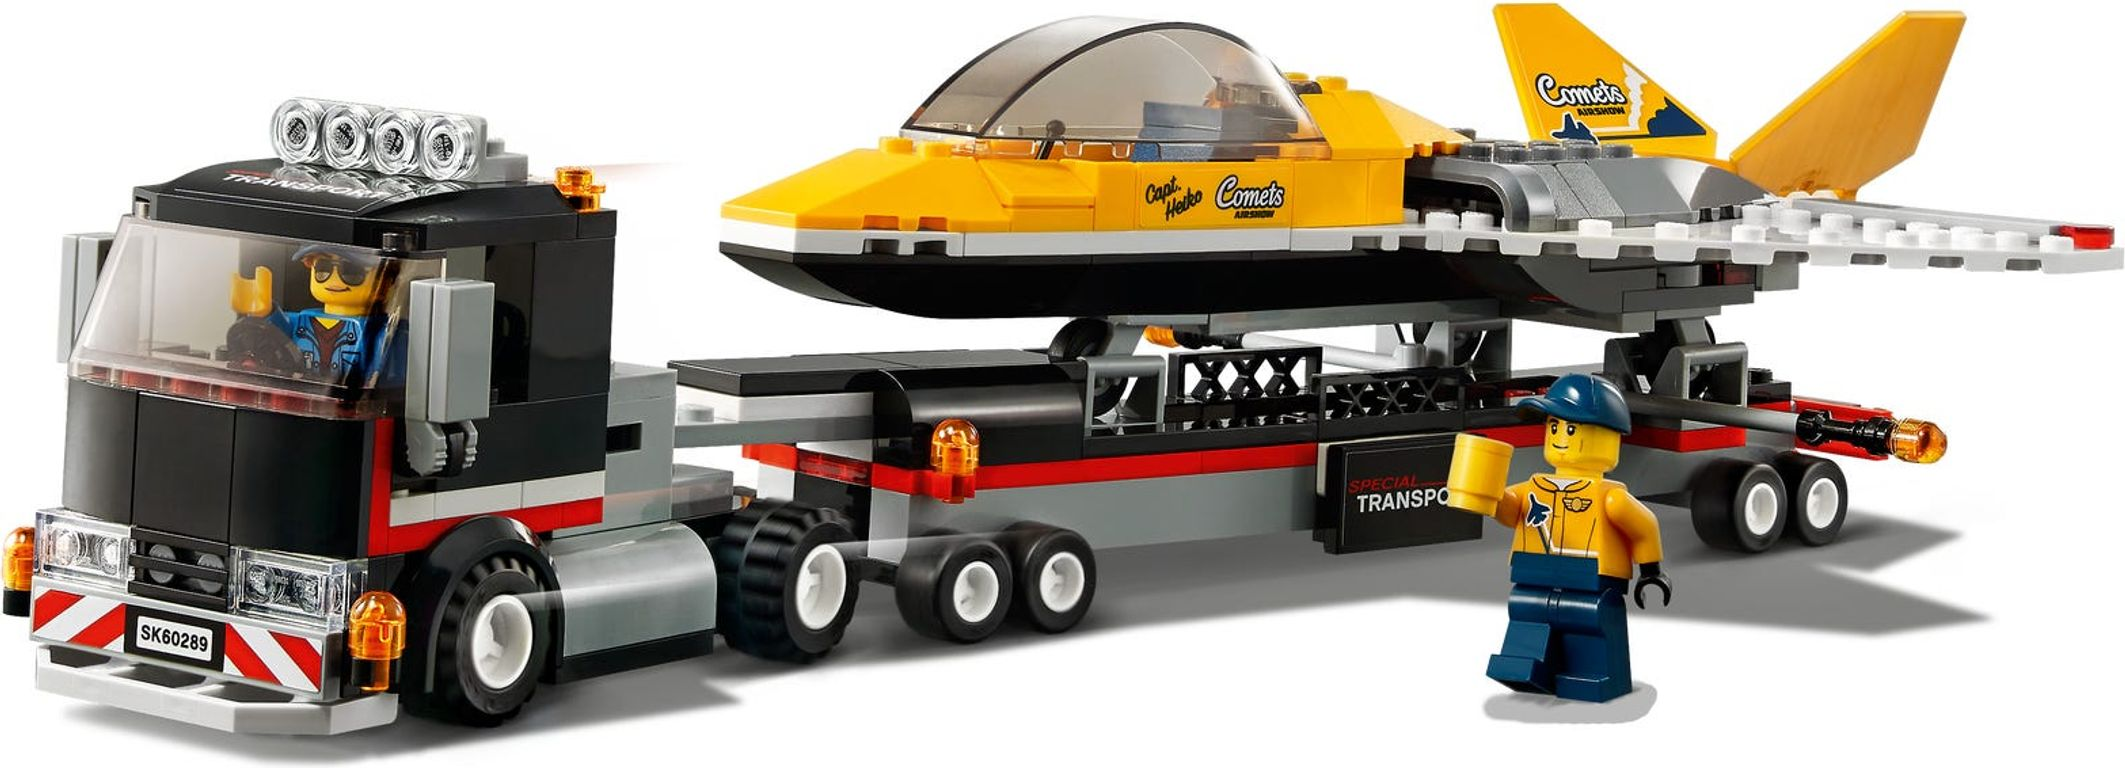 LEGO® City Airshow Jet Transporter components